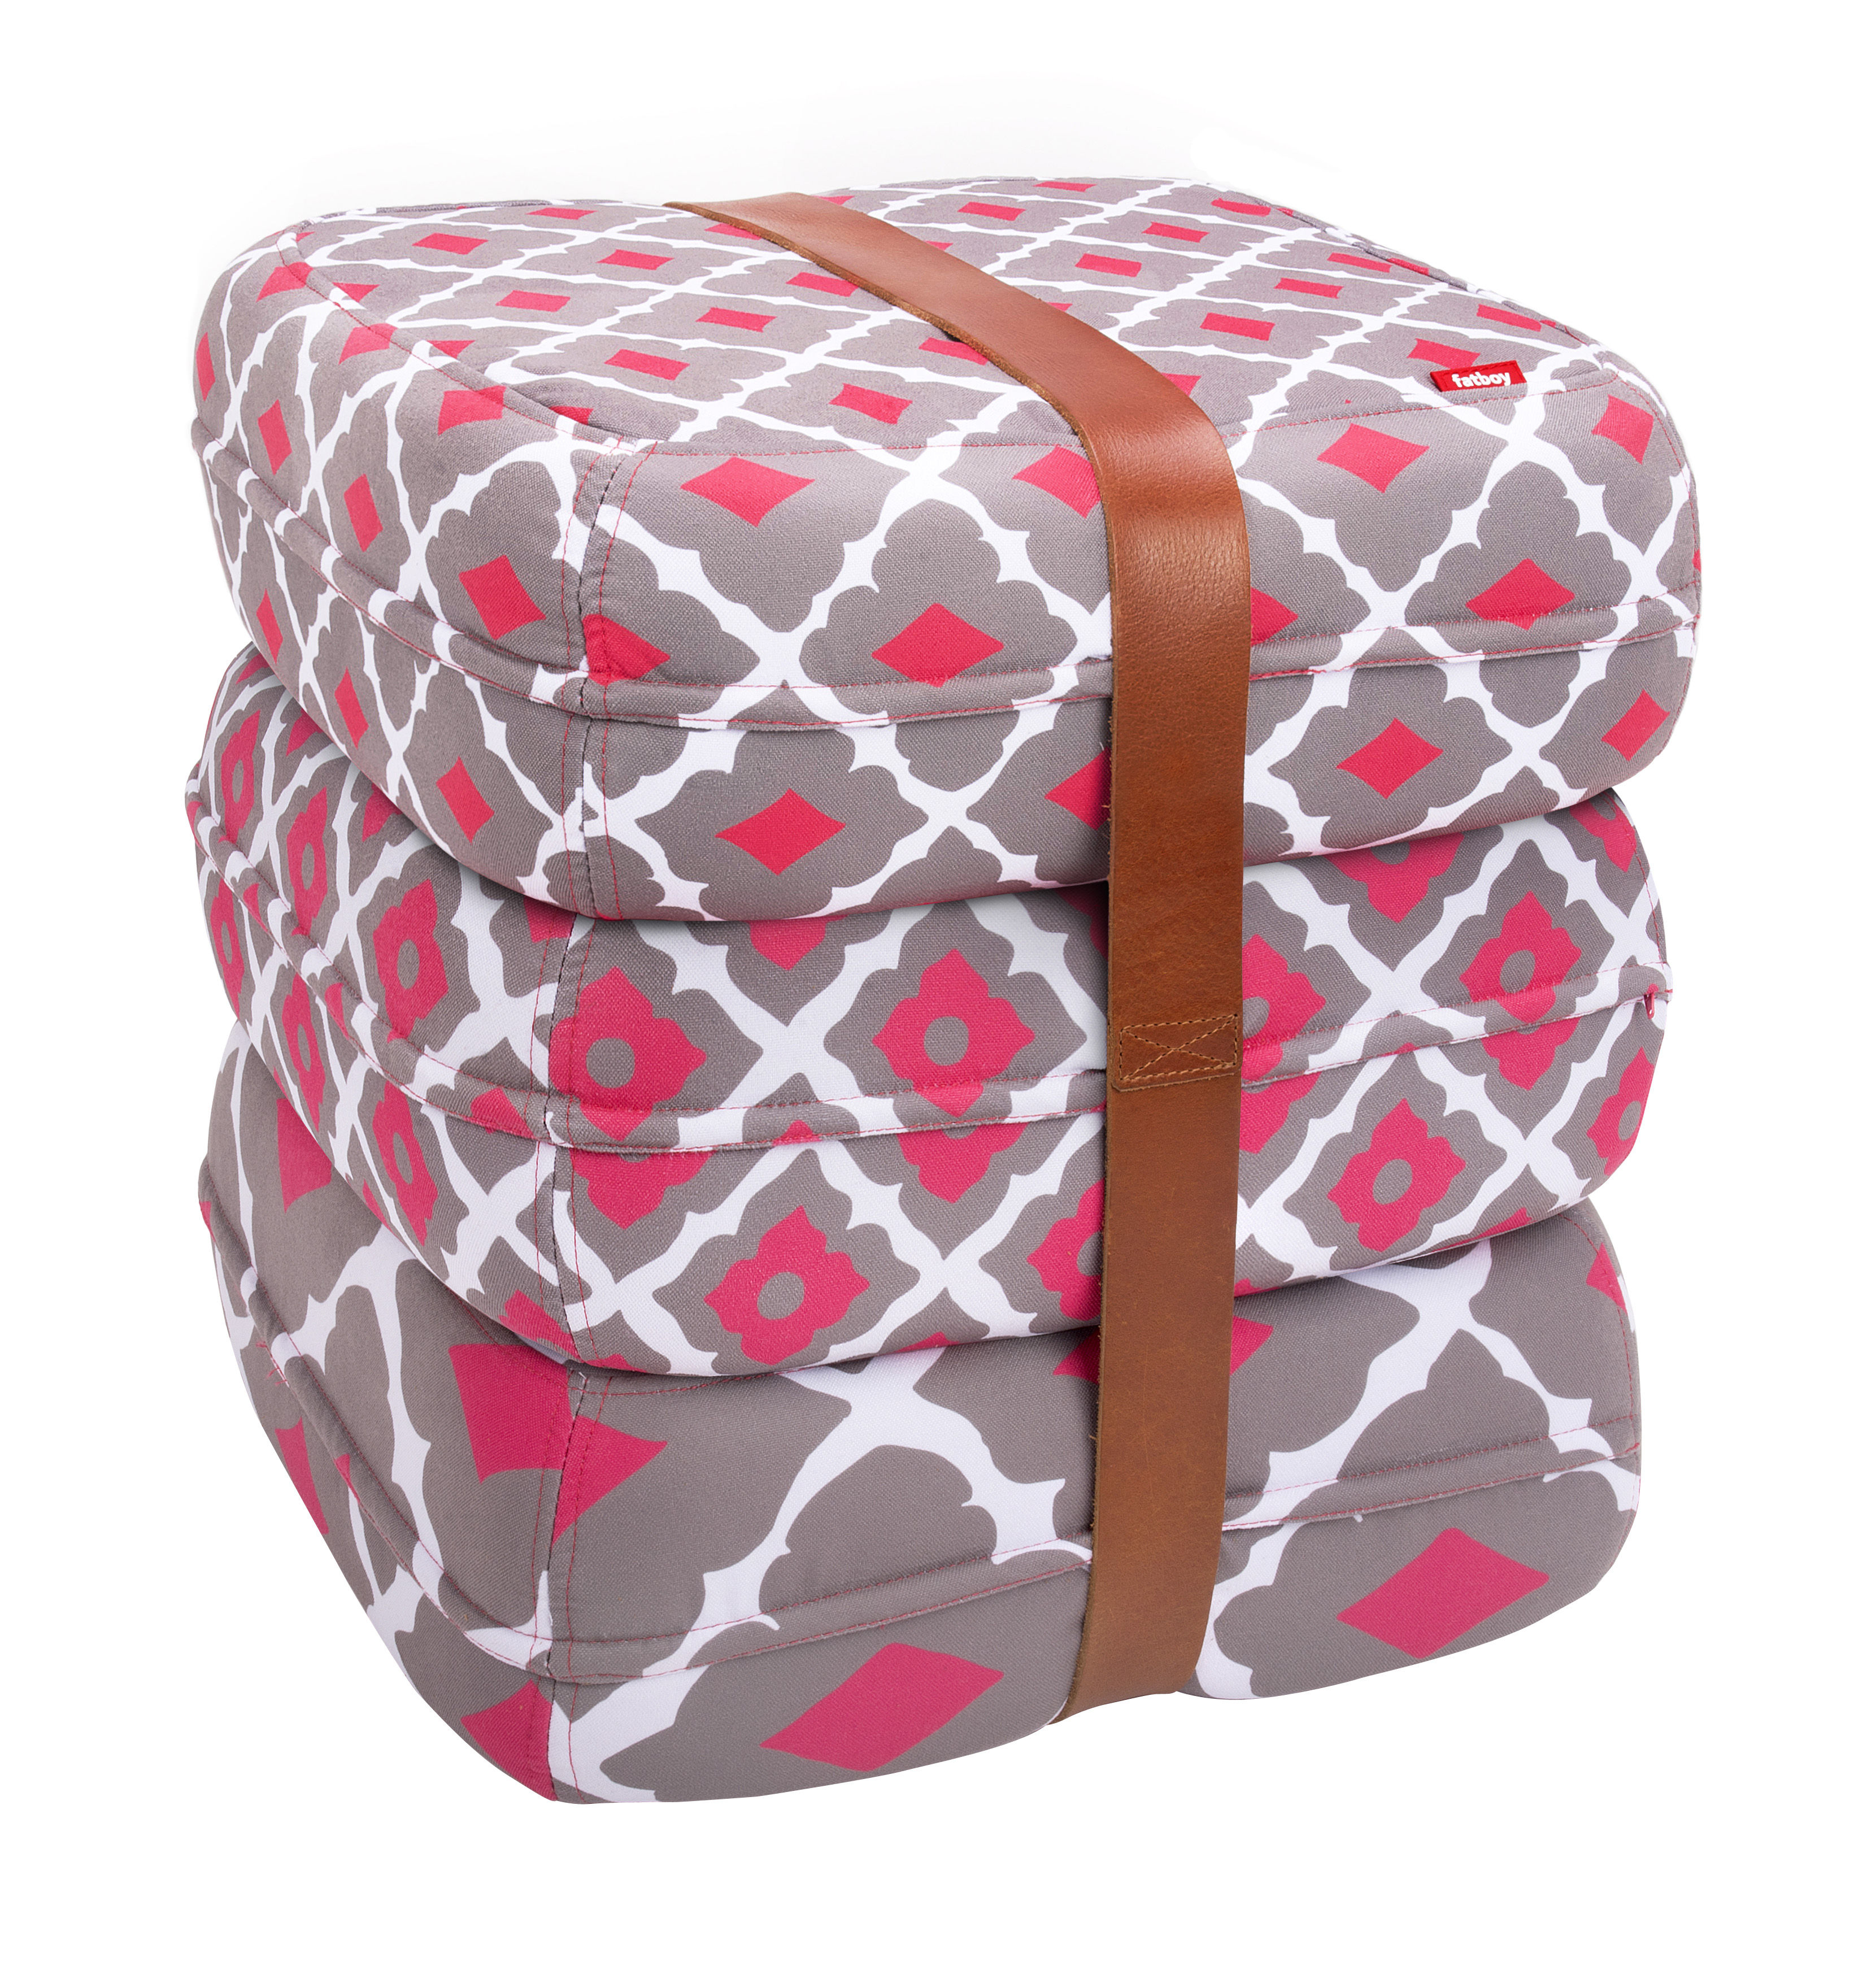 pouf baboesjka 3 coussins de sol sangle cuir lisboa rose gris fatboy. Black Bedroom Furniture Sets. Home Design Ideas